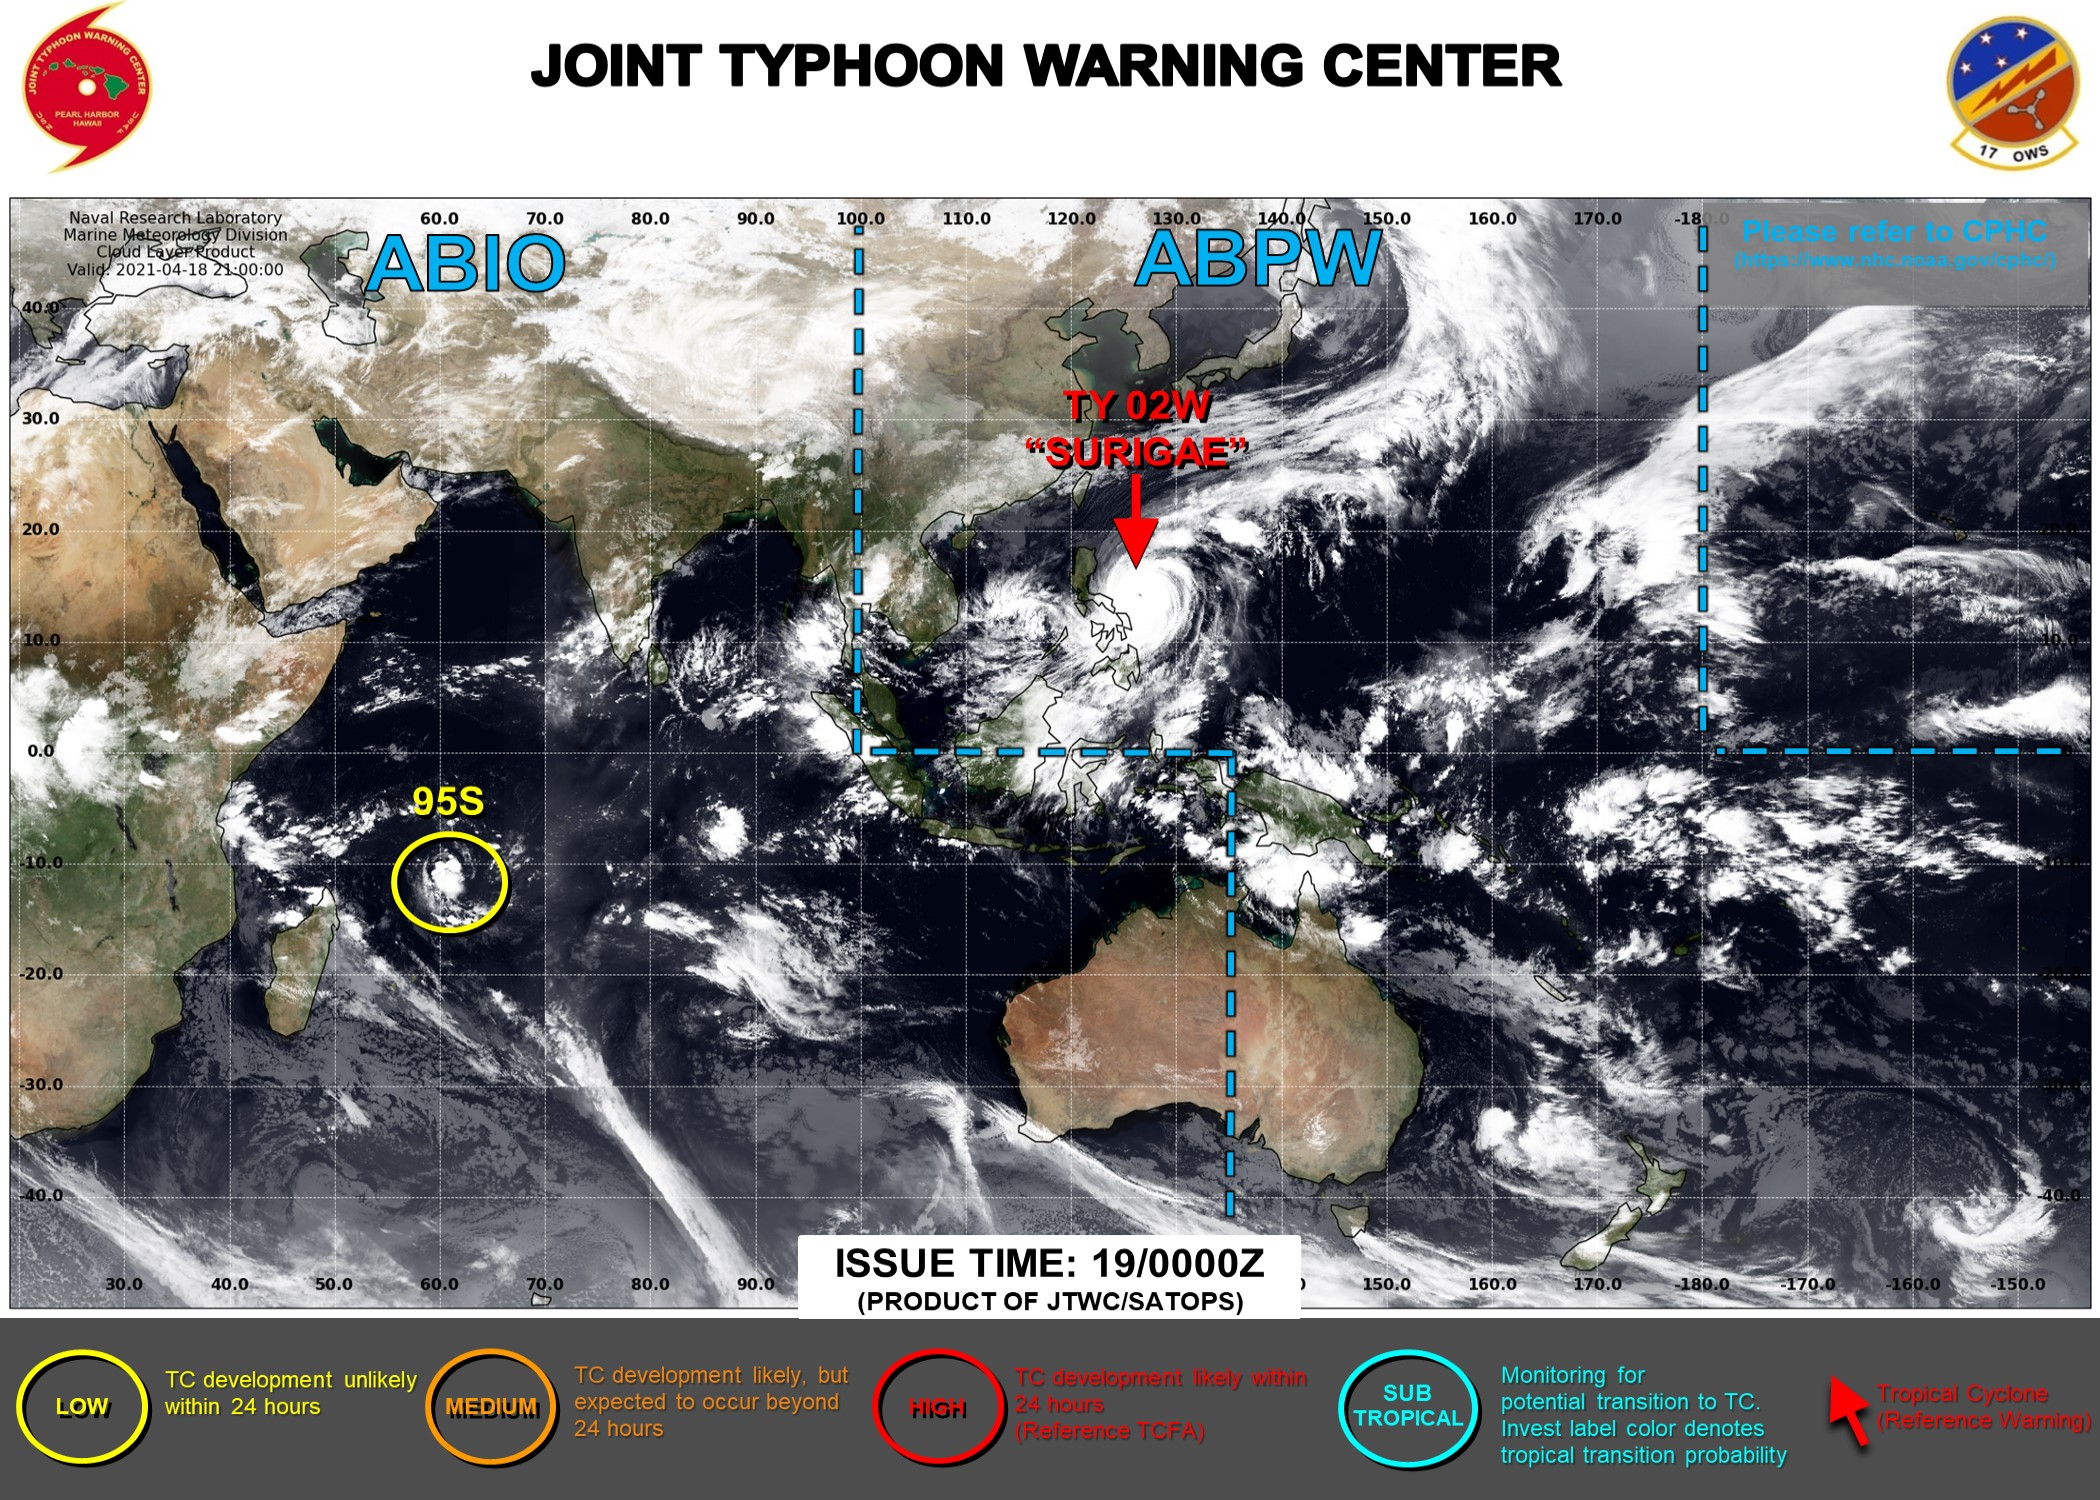 19/03UTC. THE JTWC HAS BEEN ISSUING 6HOURLY WARNINGS ON 02W(SURIGAE) AND 3HOURLY SATELLITE BULLETINS. OVER THE SOUTH IDNIAN OCEAN INVEST 95S IS NOW ON THE MAP ASSESSED AS HAVING LOW CHANCES OF REACHING 35KNOTS WITHIN THE NEXT 24HOURS.